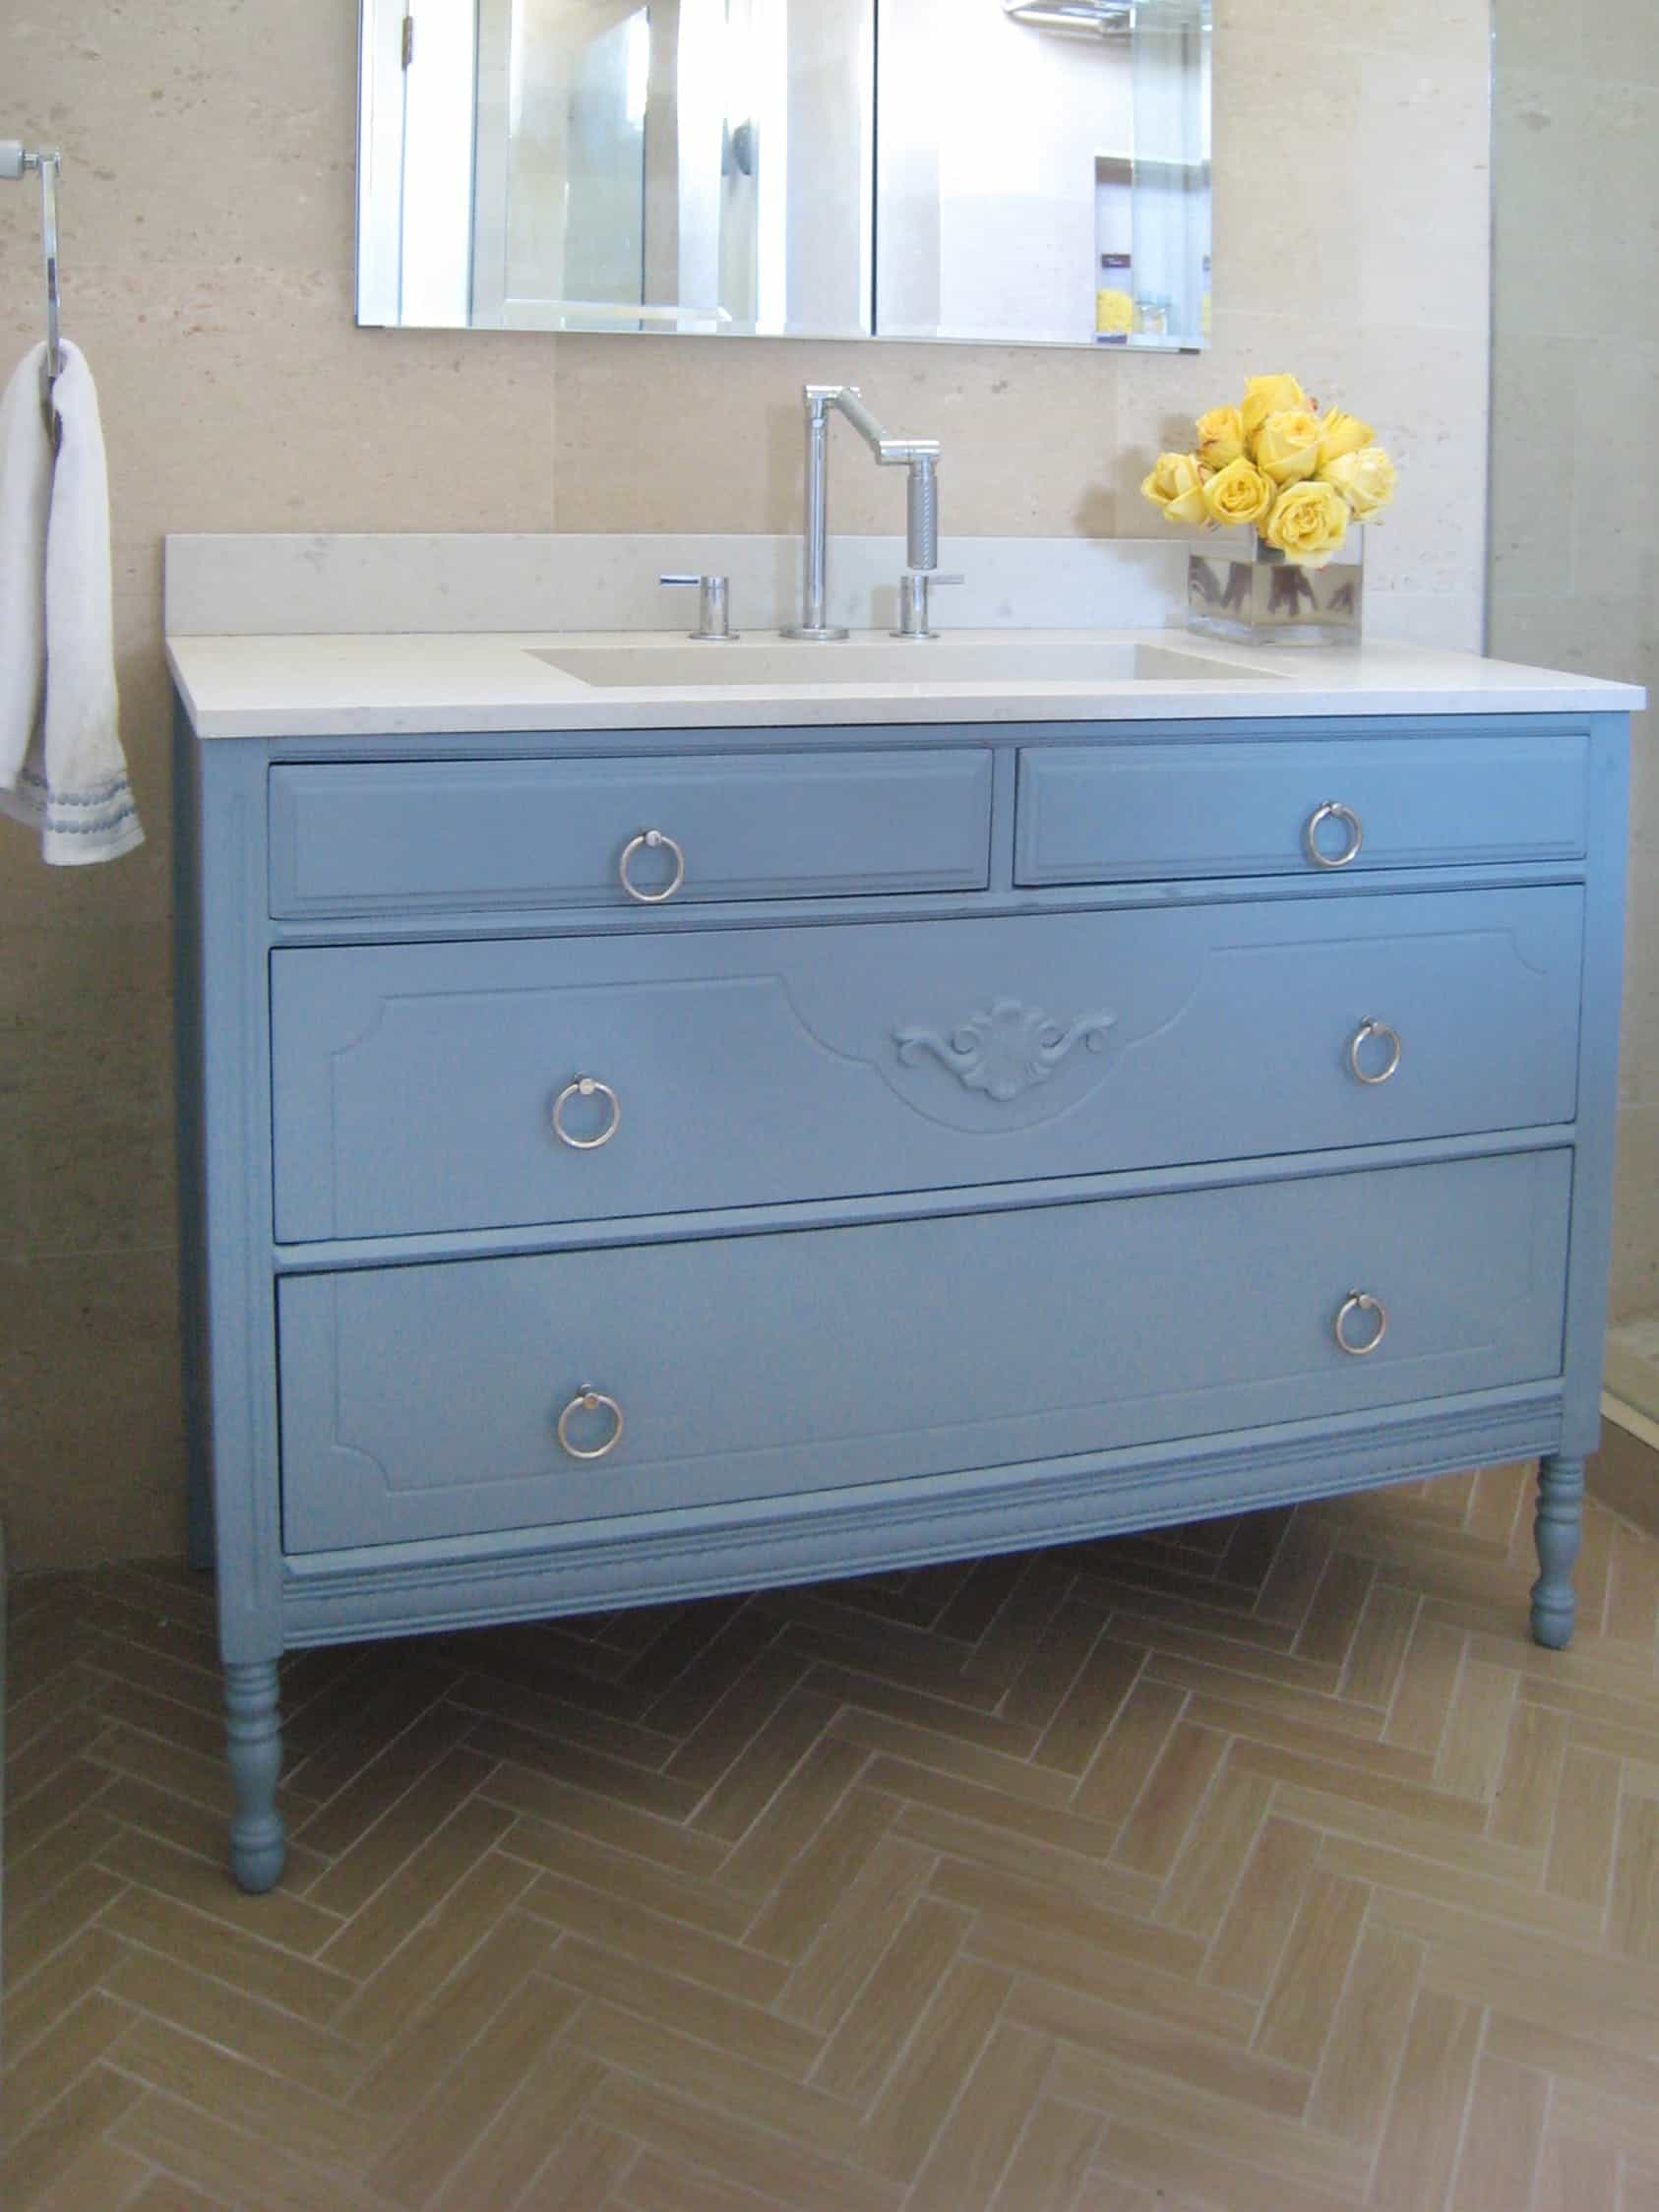 Country Vintage Blue Bathroom Vanity (Image 4 of 12)